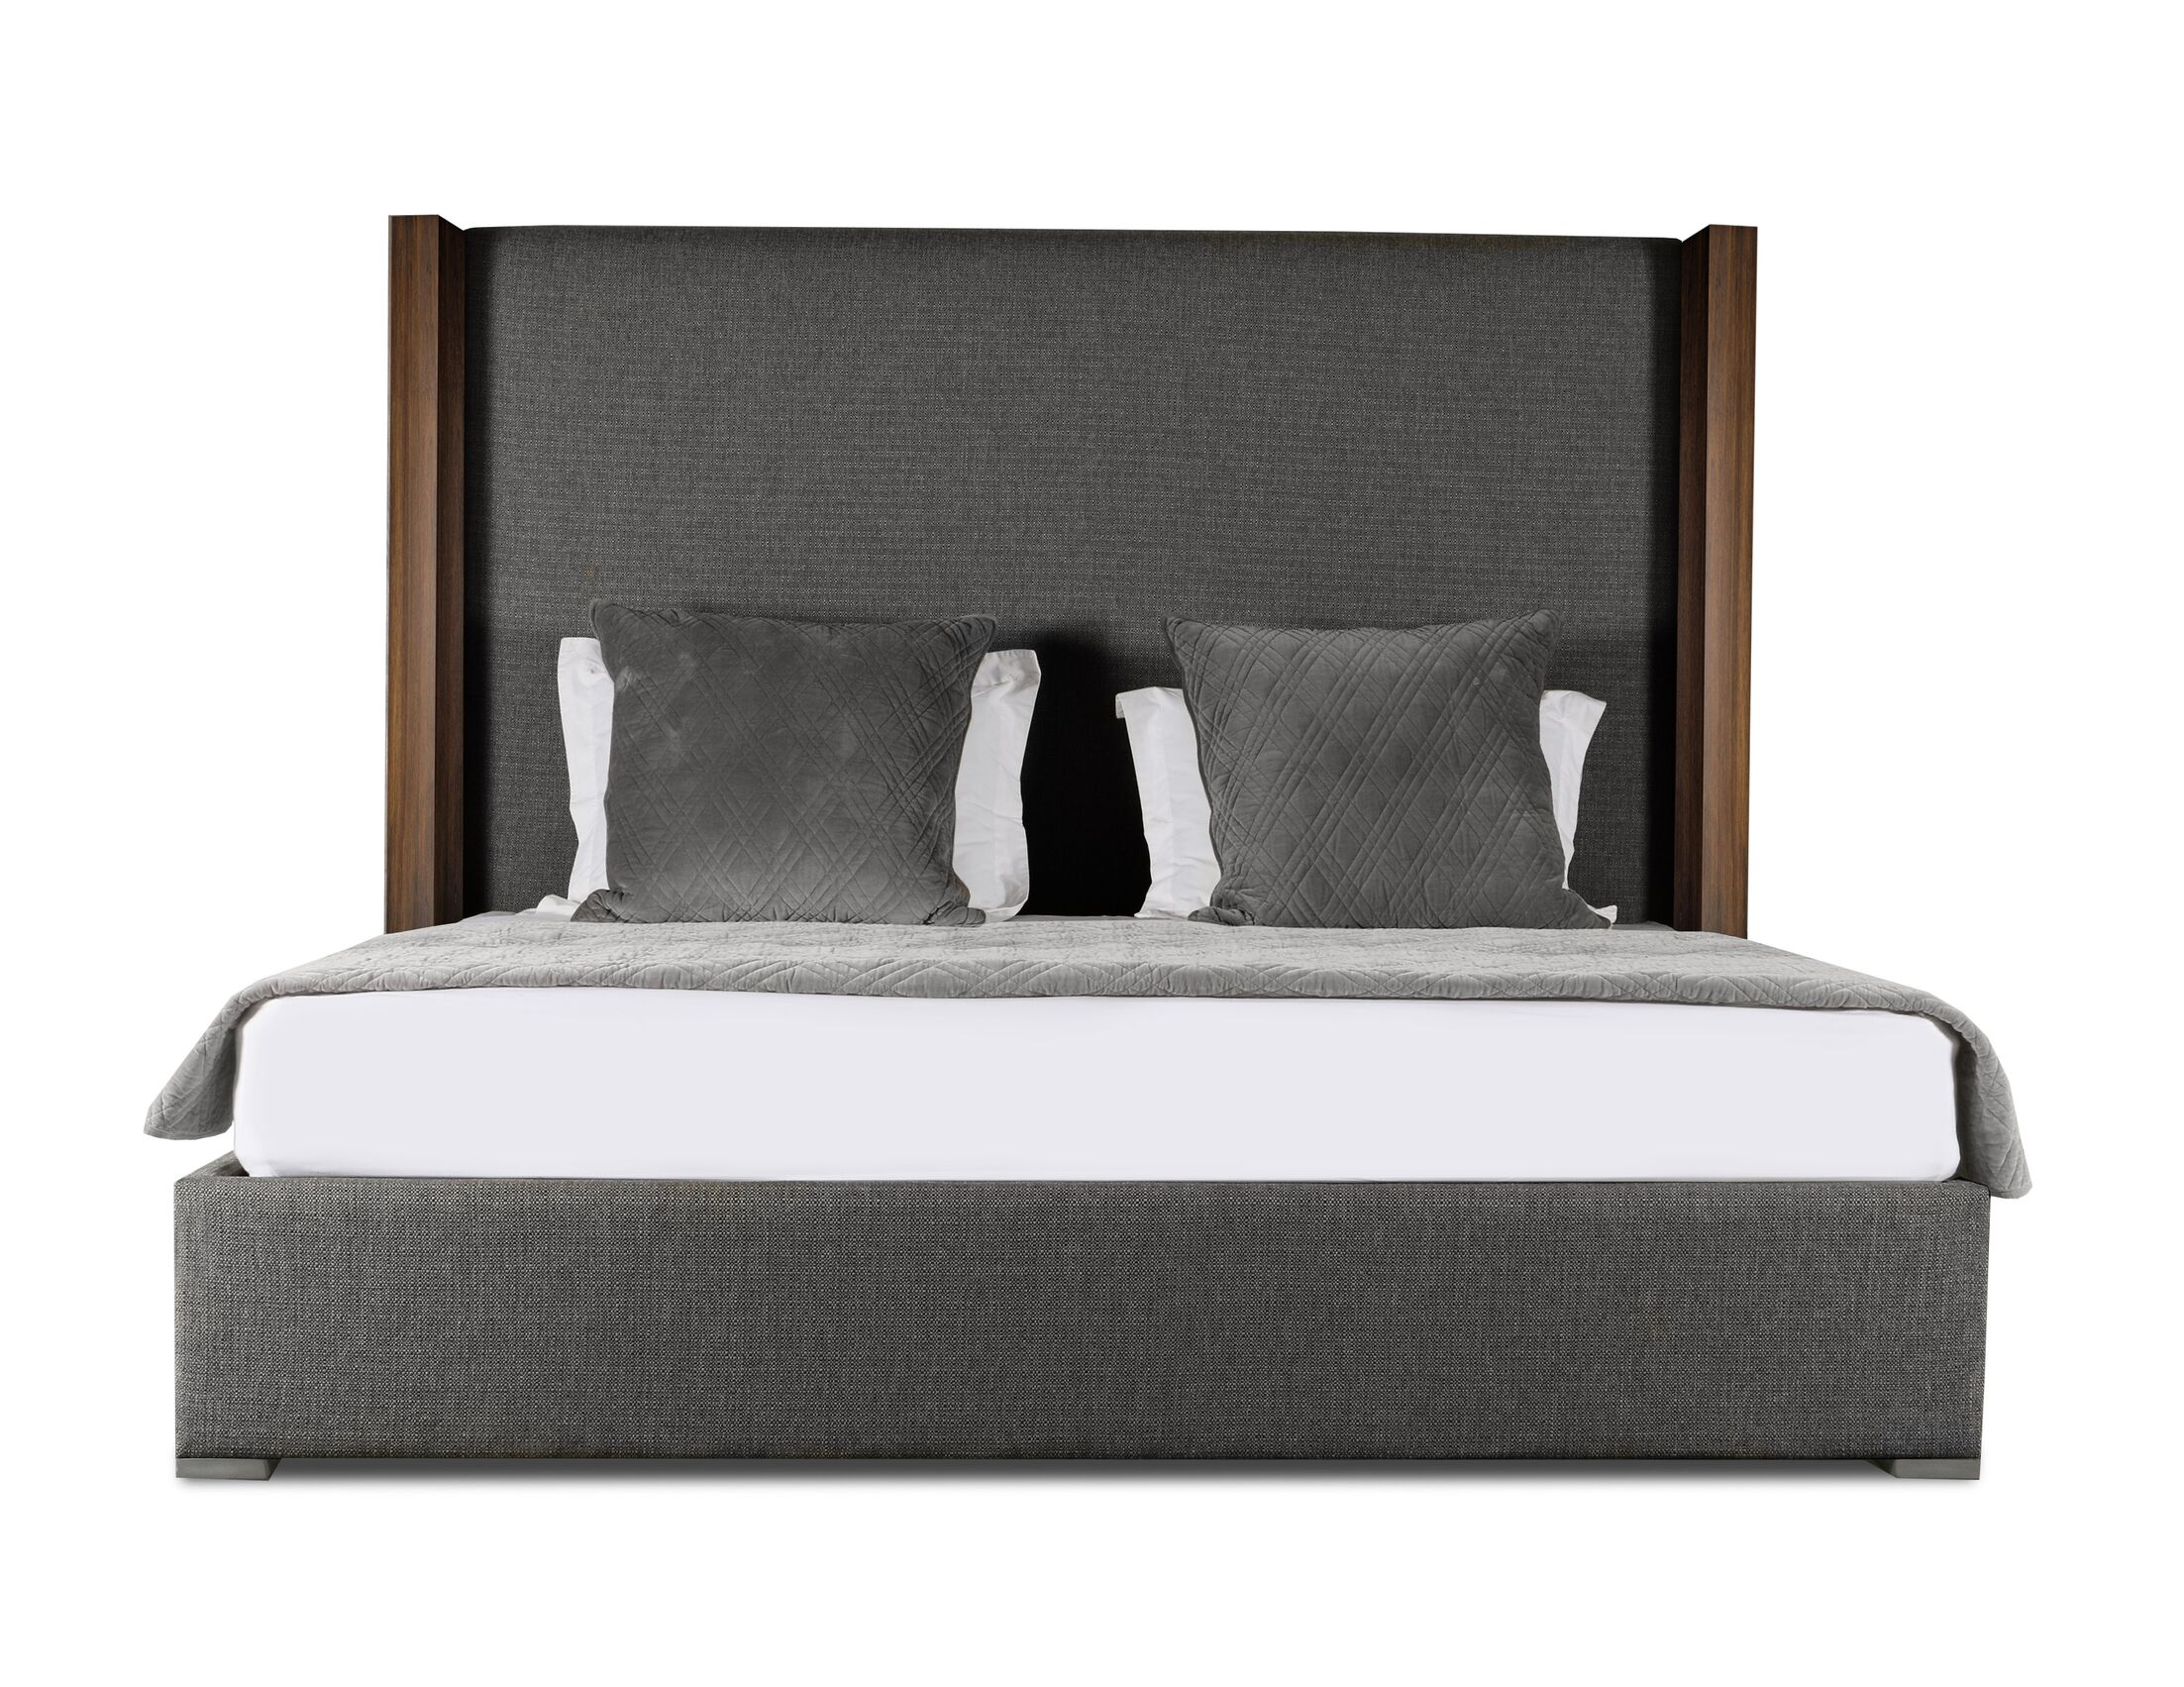 Harborcreek Plain Upholstered Panel Bed Color: Charcoal, Size: High Height Queen